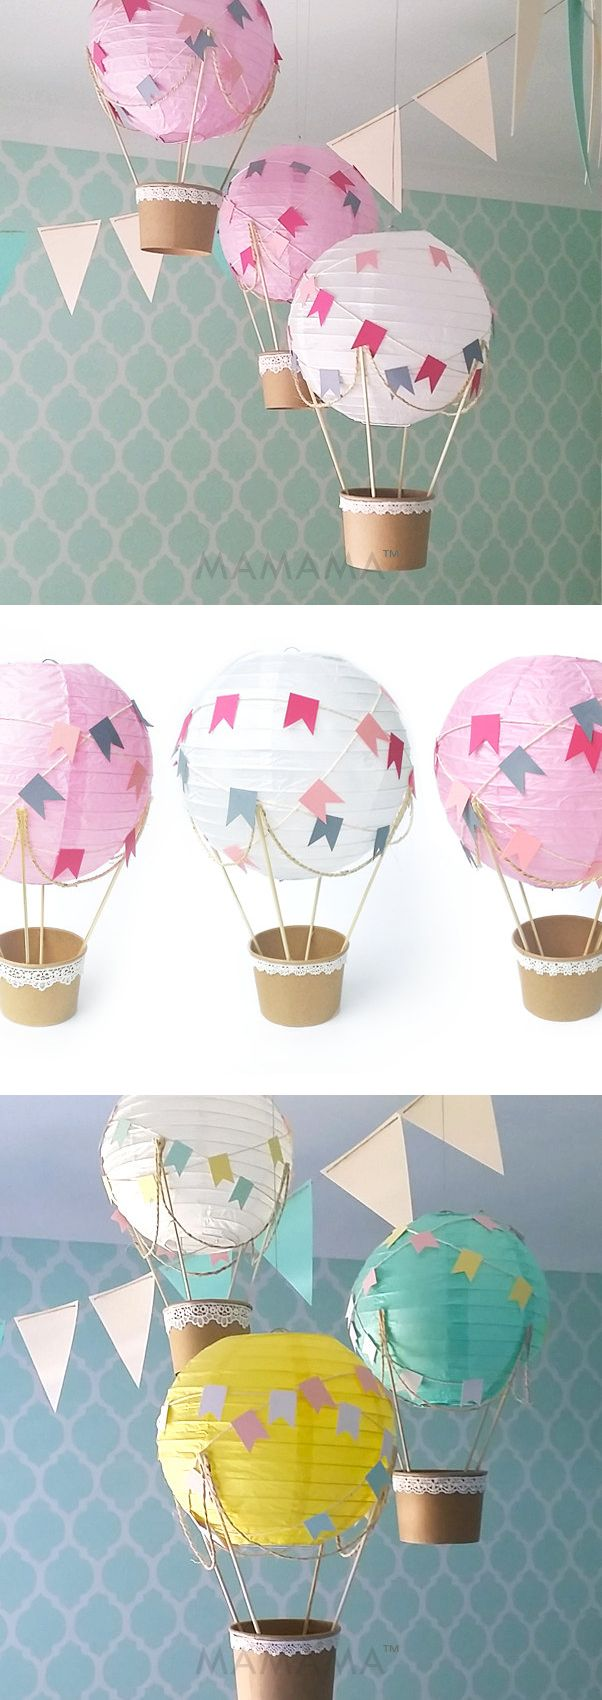 Whimsical Hot Air Balloon Decoration DIY kit , Nursery Decor , unisex Baby shower , Wedding Decor Travel Theme Decor - set of 3